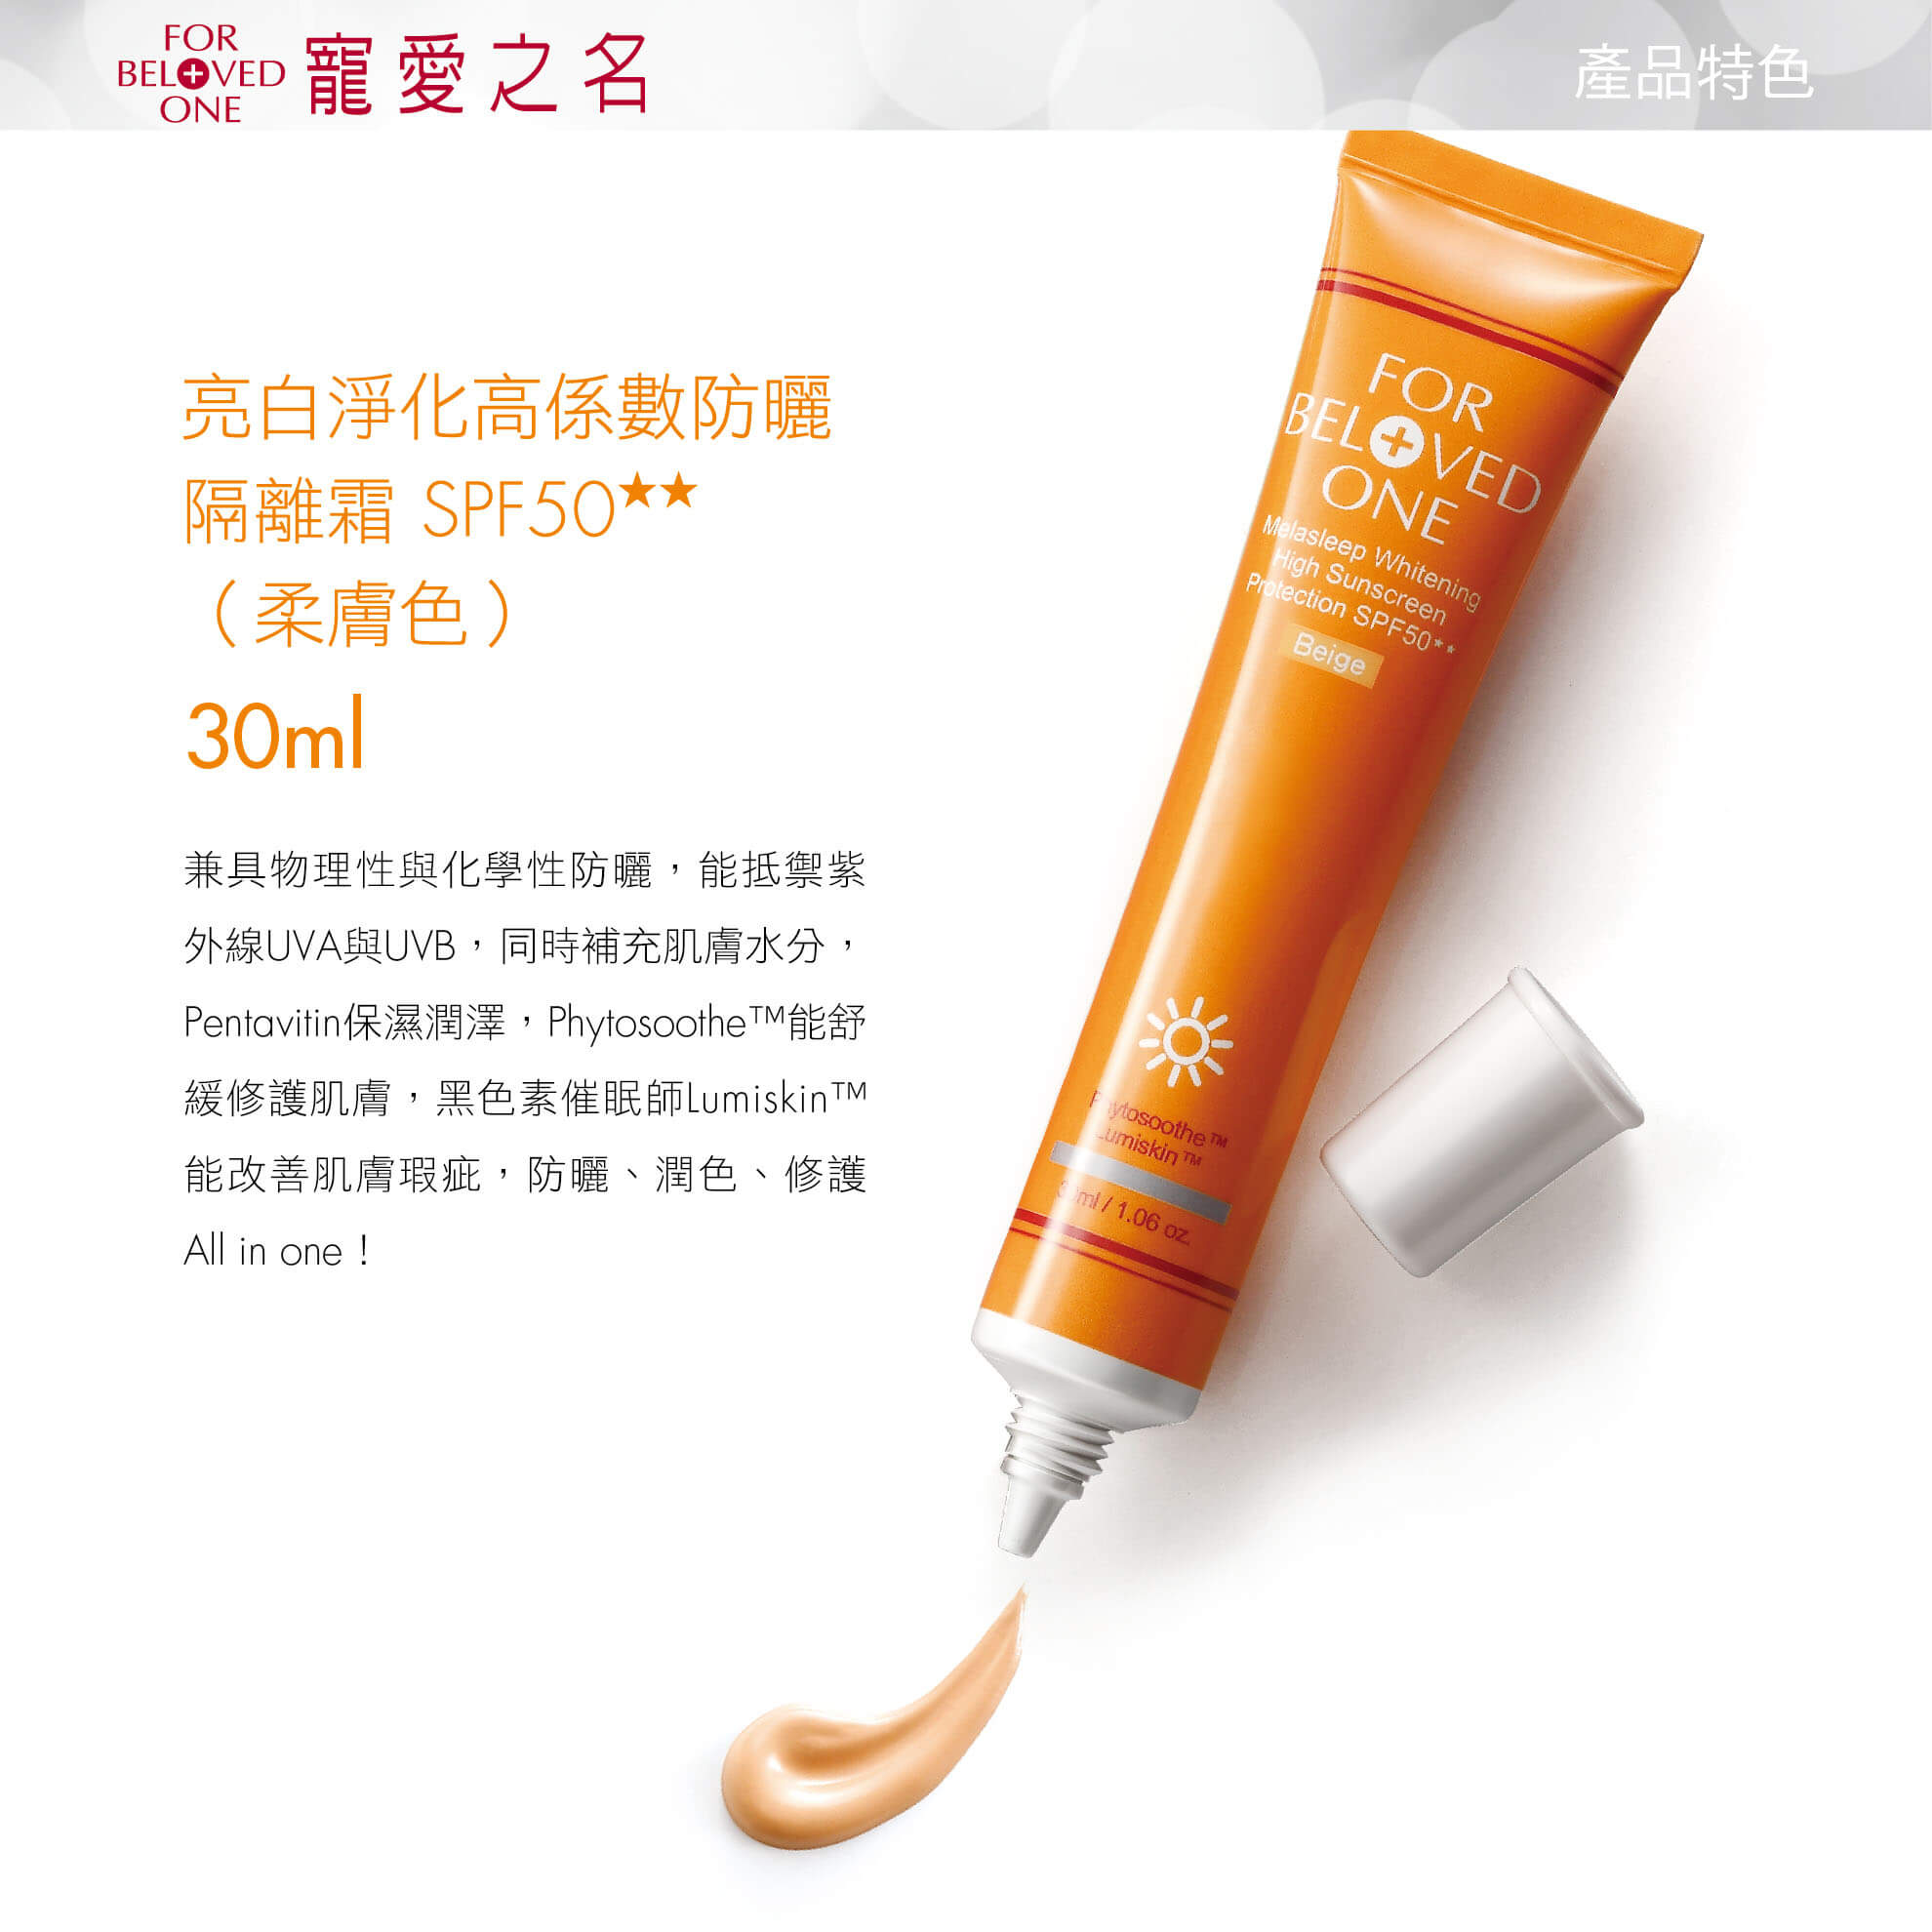 Whitening High Sunscreen Protection - Product Benefits